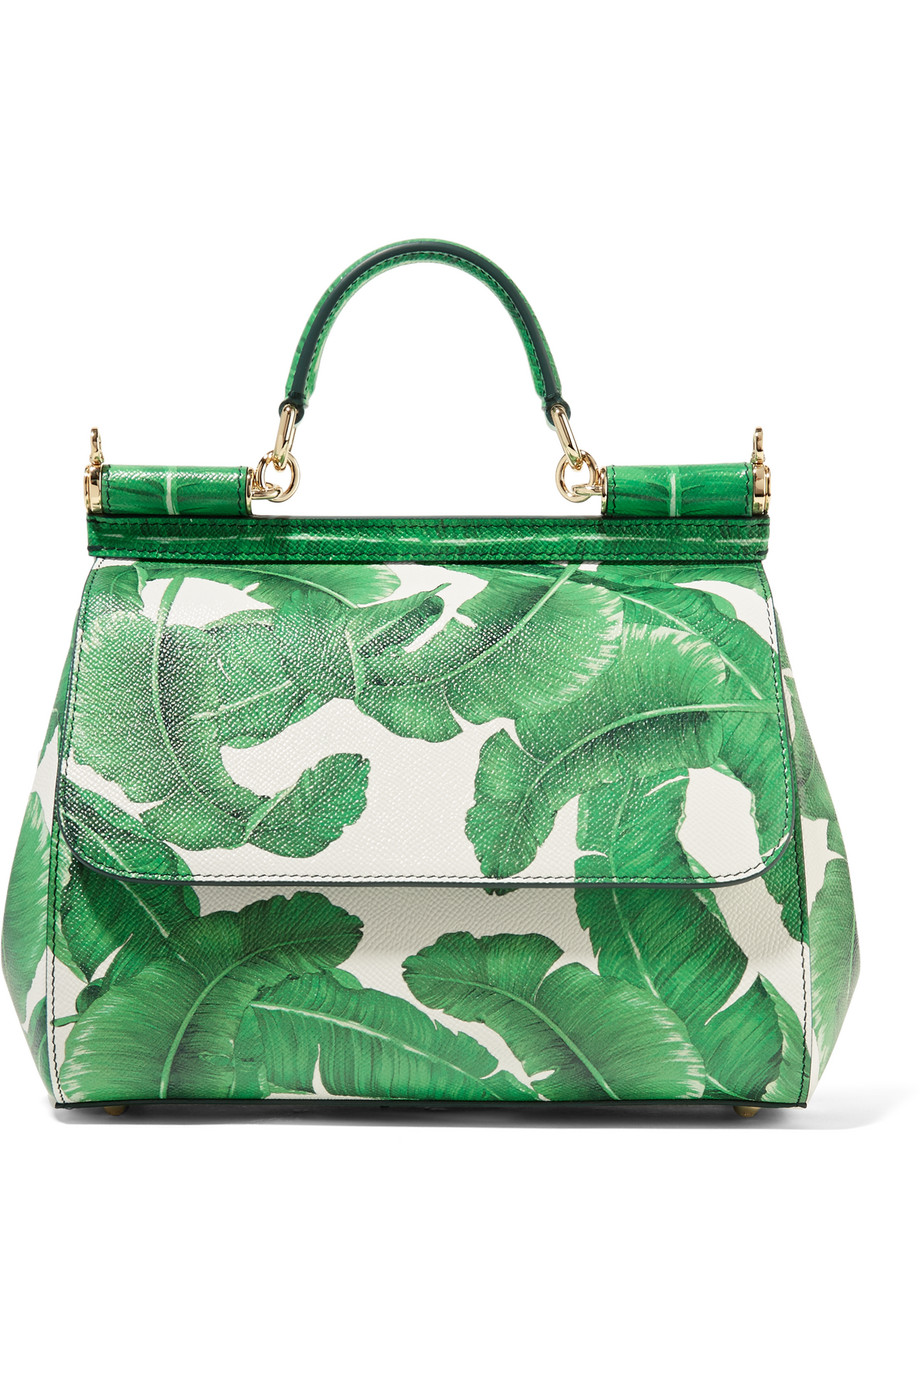 Dolce & Gabbana Sicily Medium Printed Textured-Leather Tote, Green, Women's